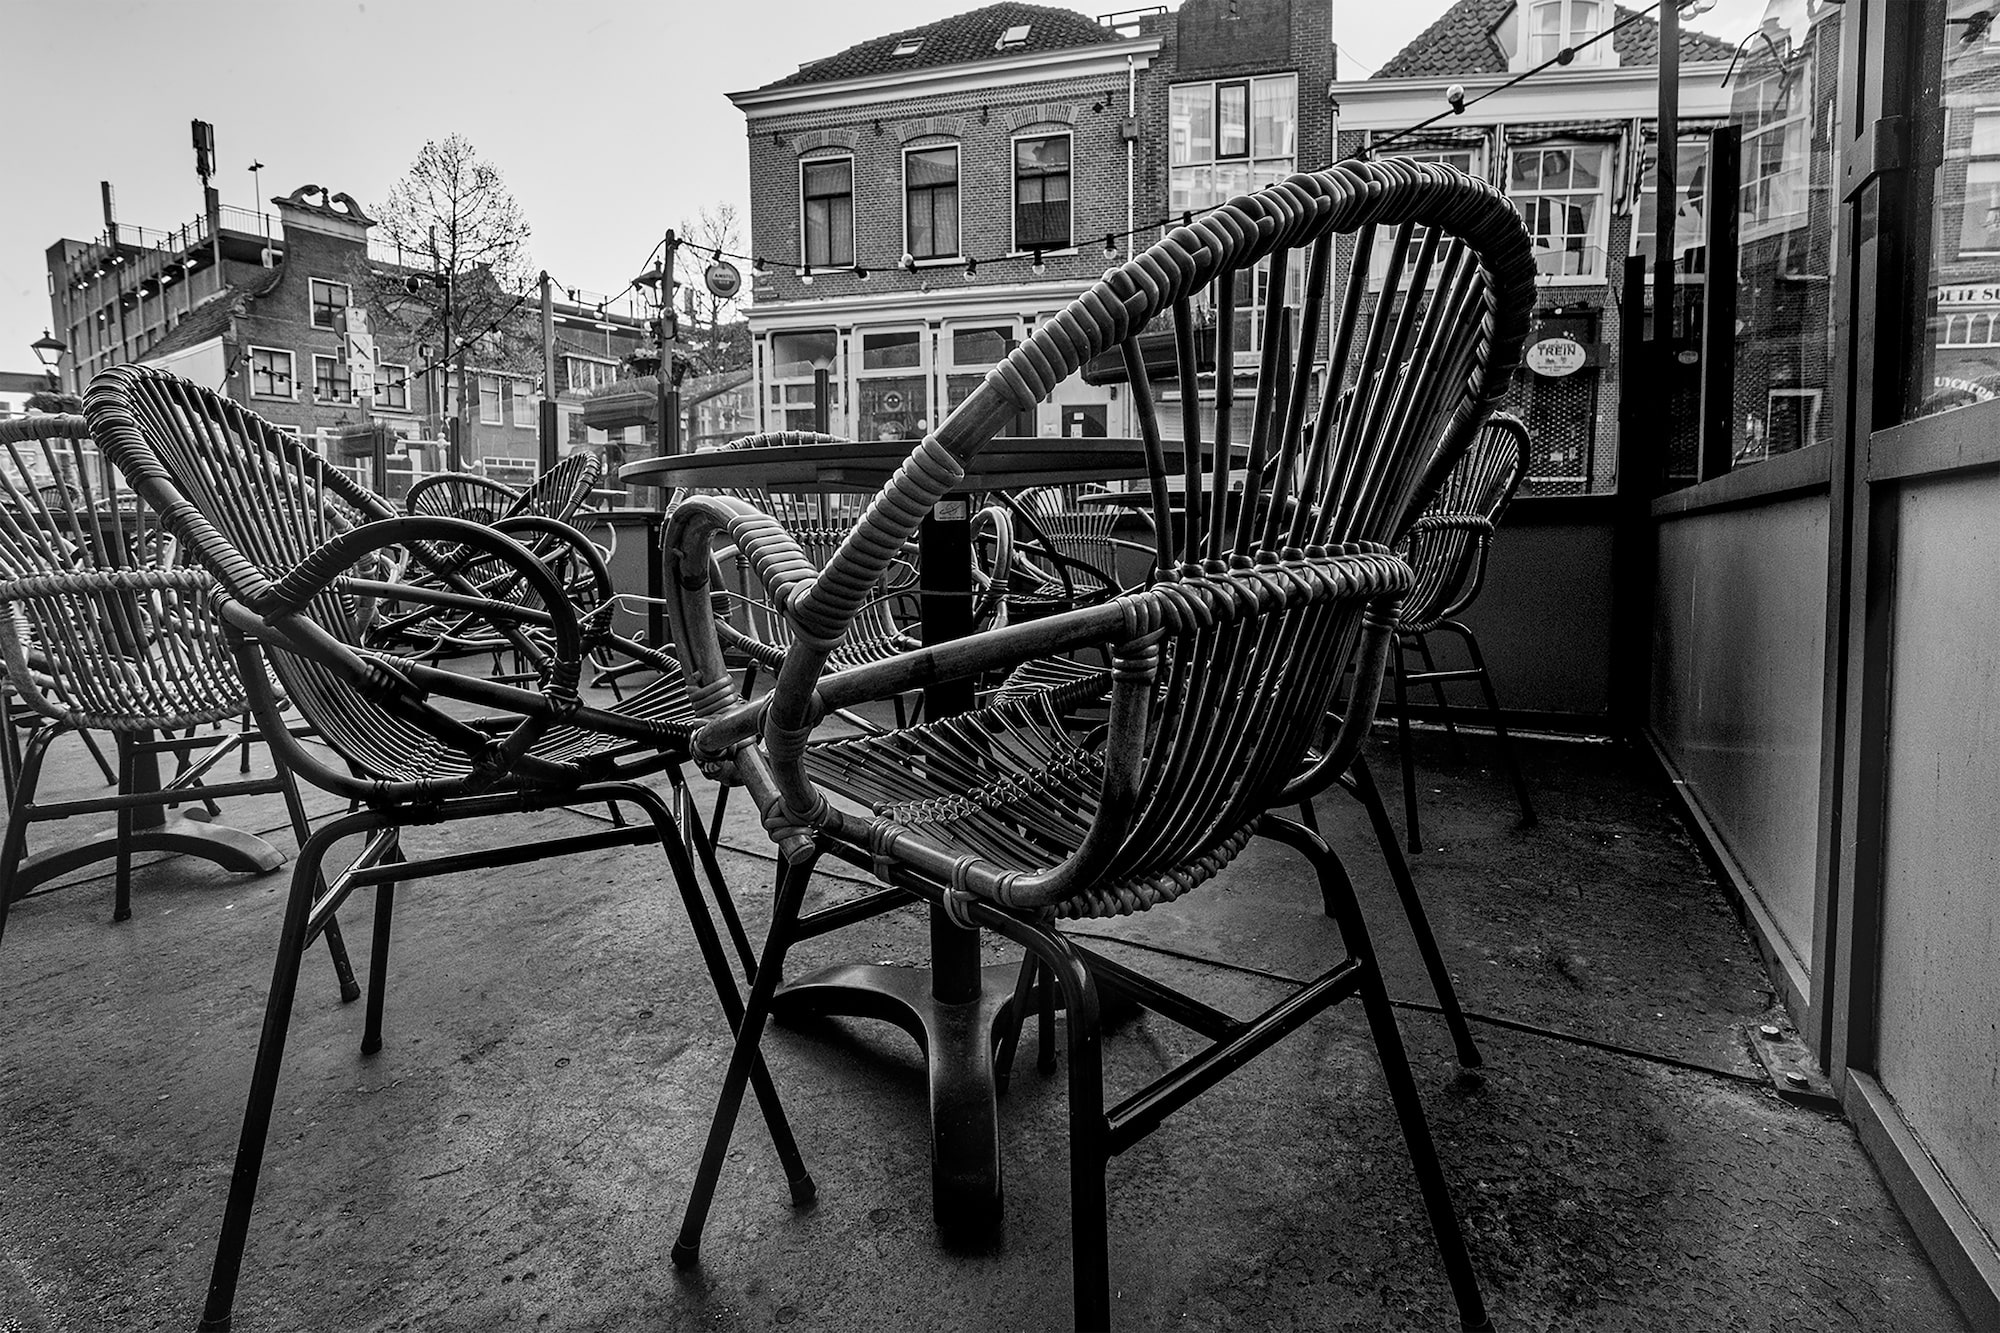 brendan de clercq sony alpha 6600 empty chairs outside a cafe in amsterdam